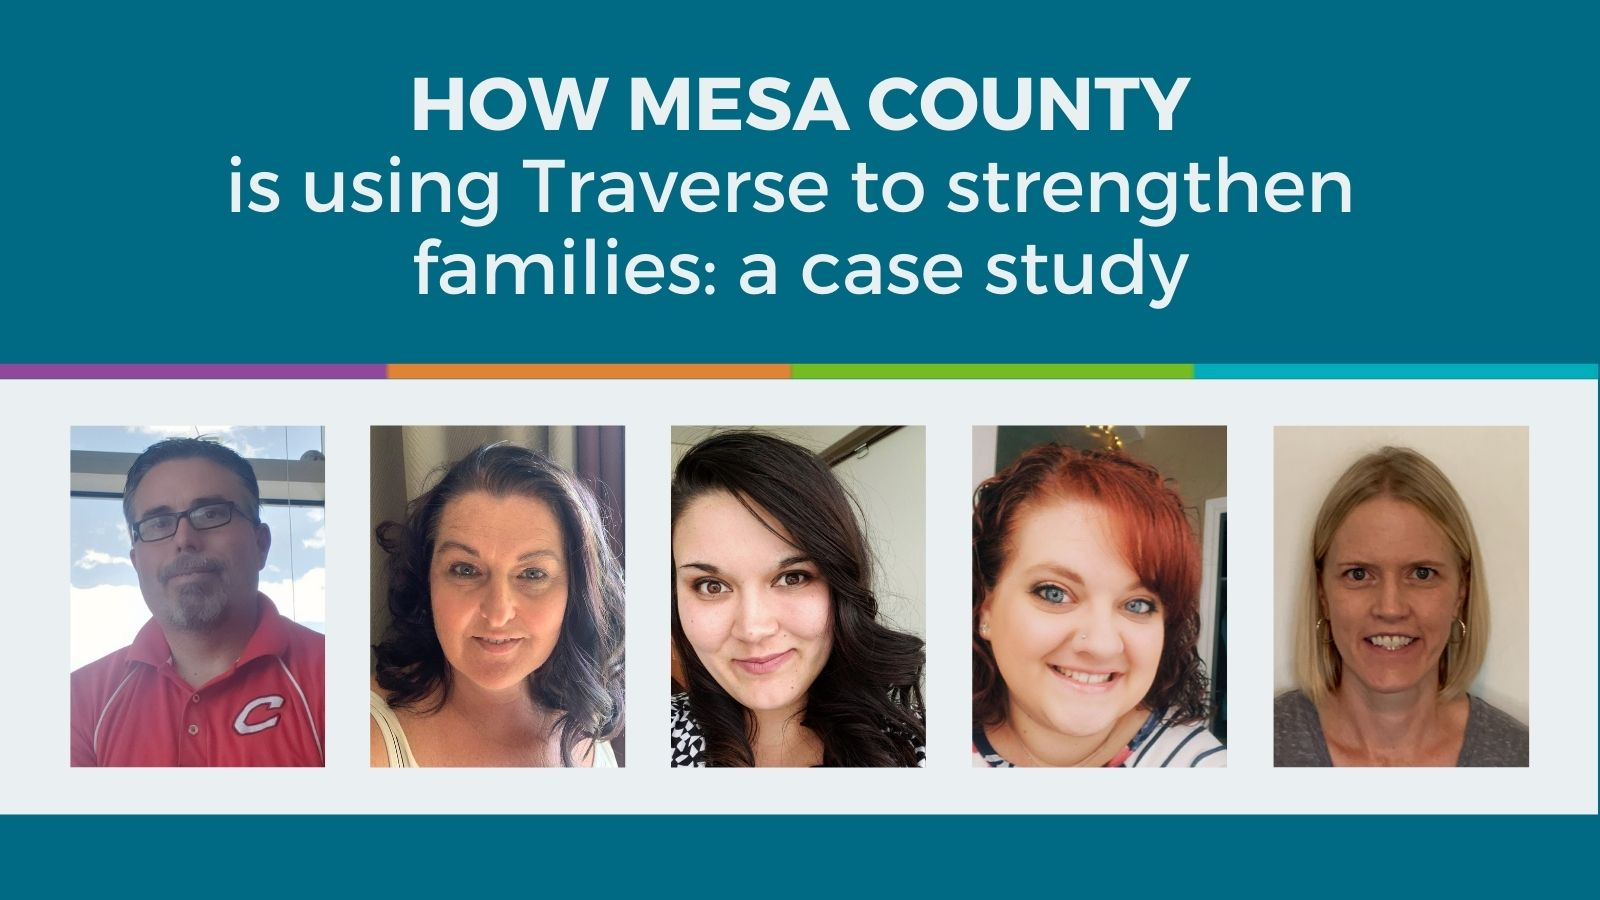 How Mesa County is Using Traverse to Strengthen Families: A Case Study